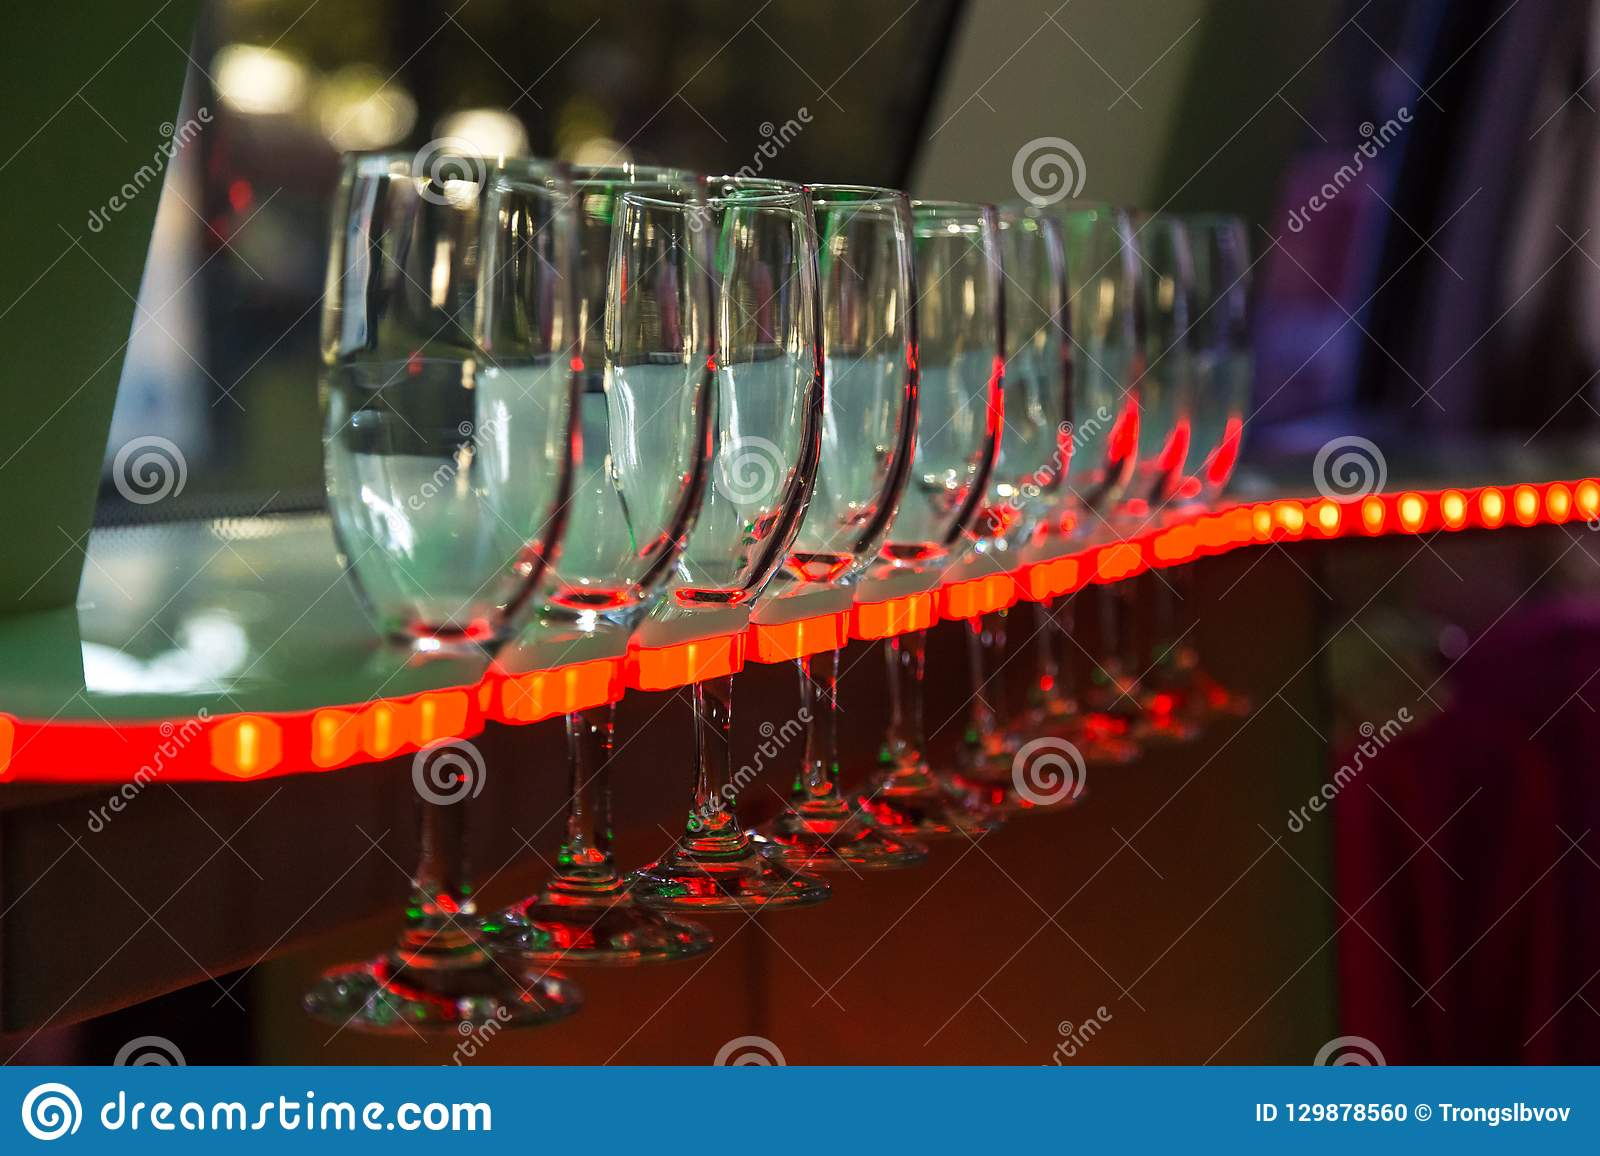 Wine glasses in the limmusine with backlight 2